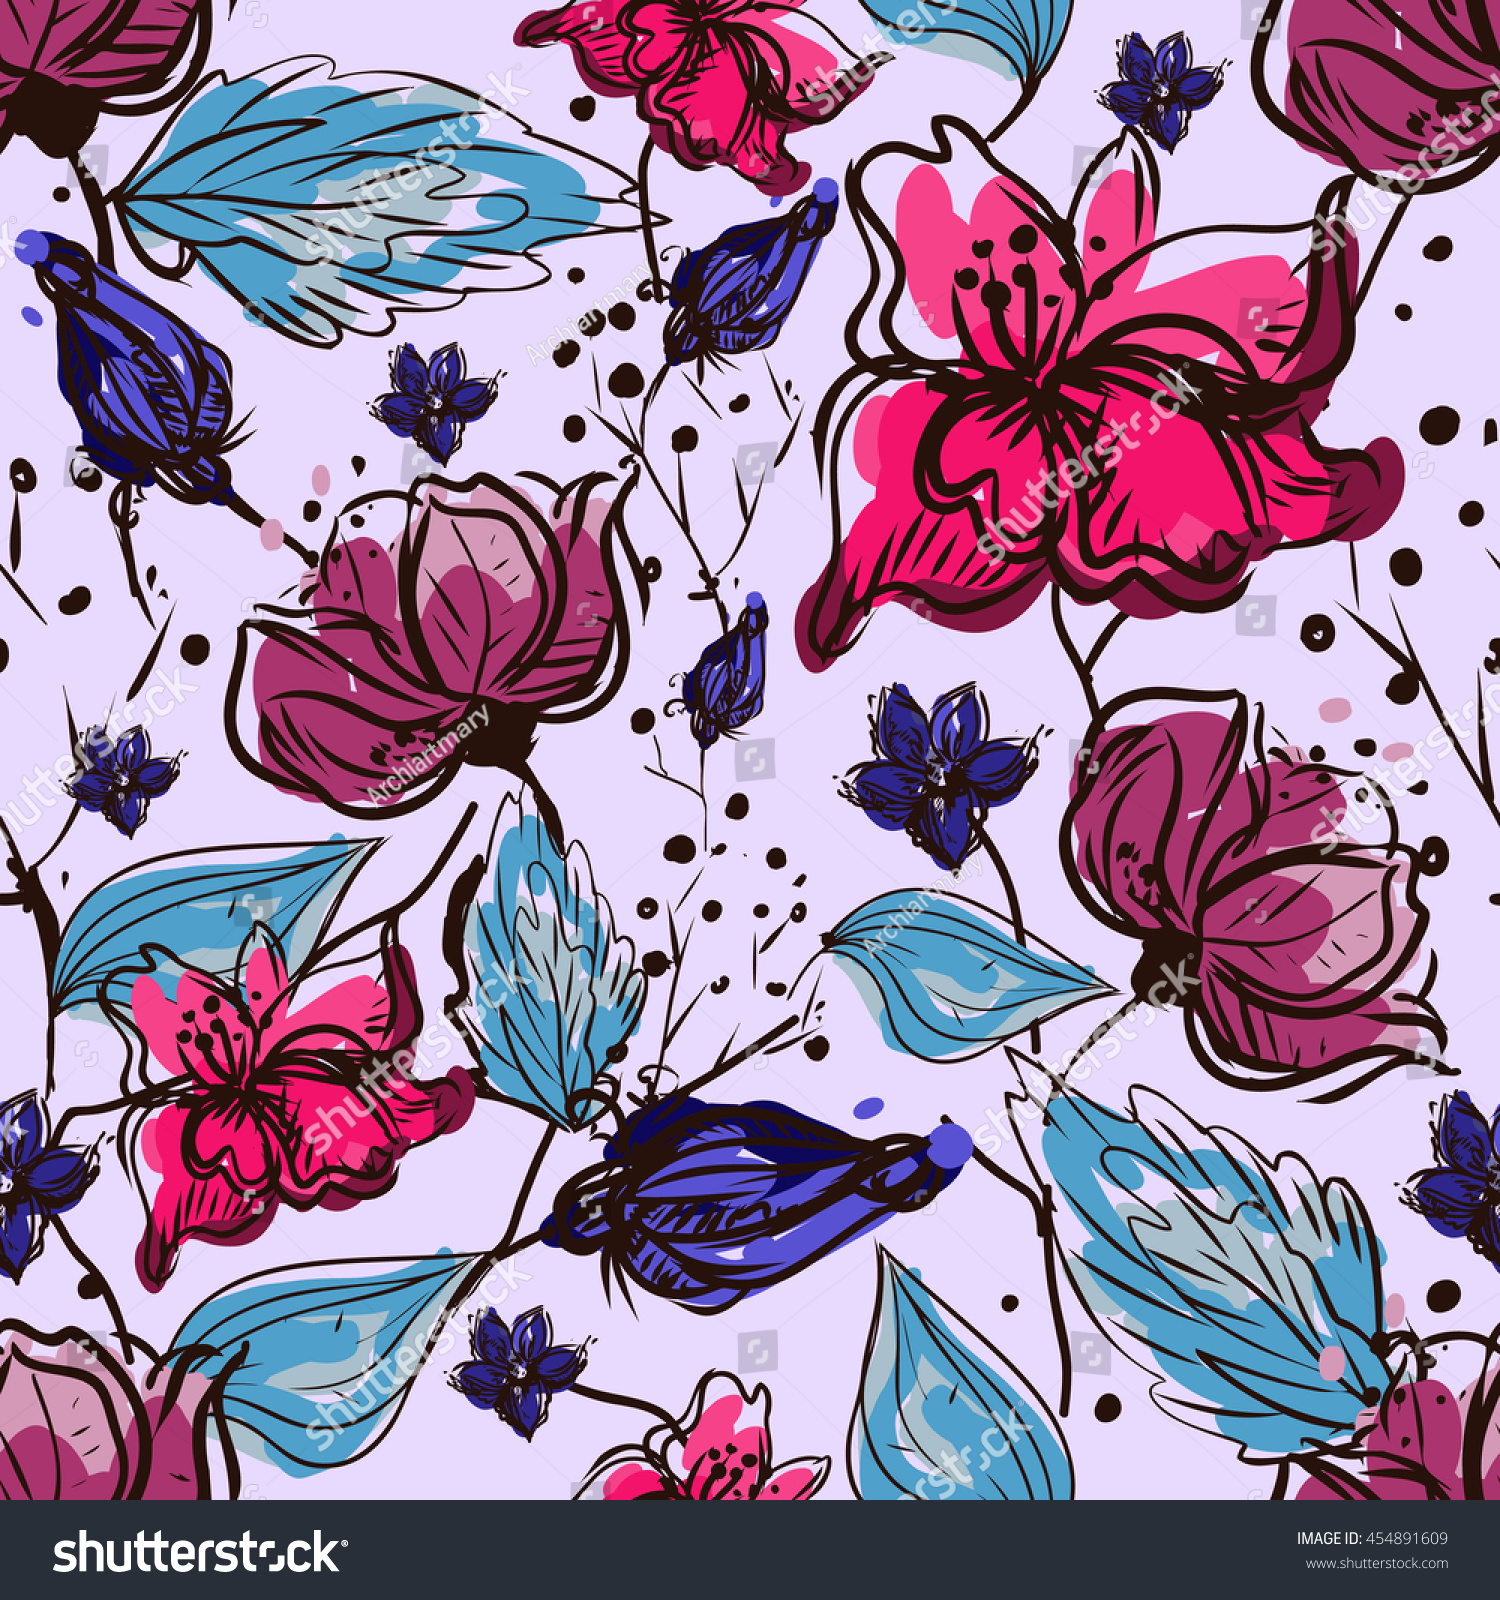 Flower seamless pattern Vector Floral hand drawn texture Sketch free hand Textile ink graphic